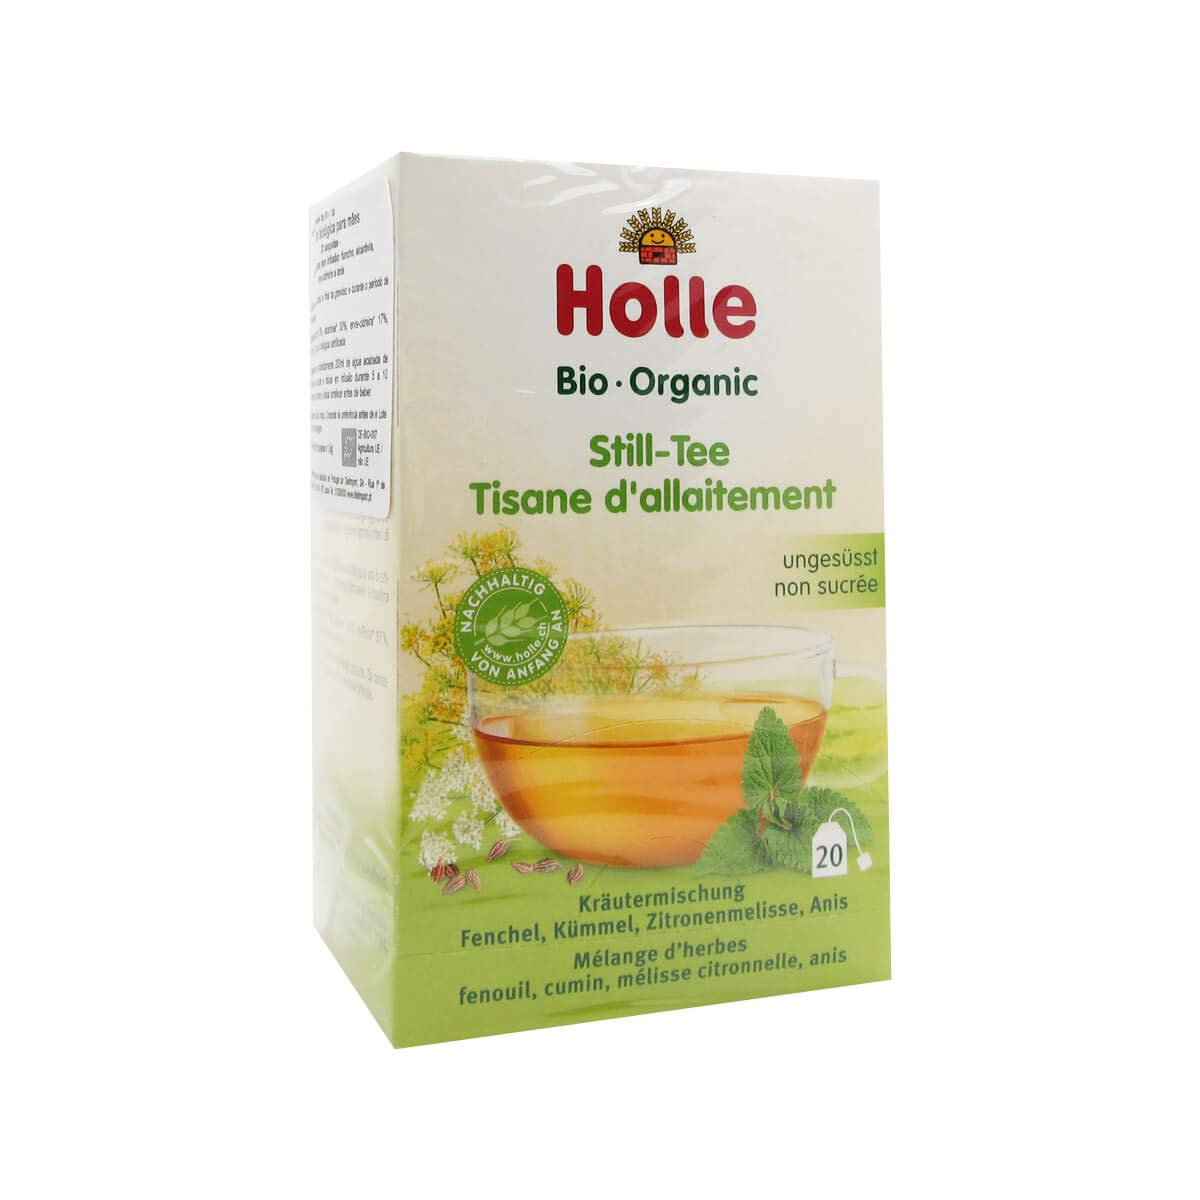 Holle Bio Infusion Pregnant And Breastfeeding 20x1.5g